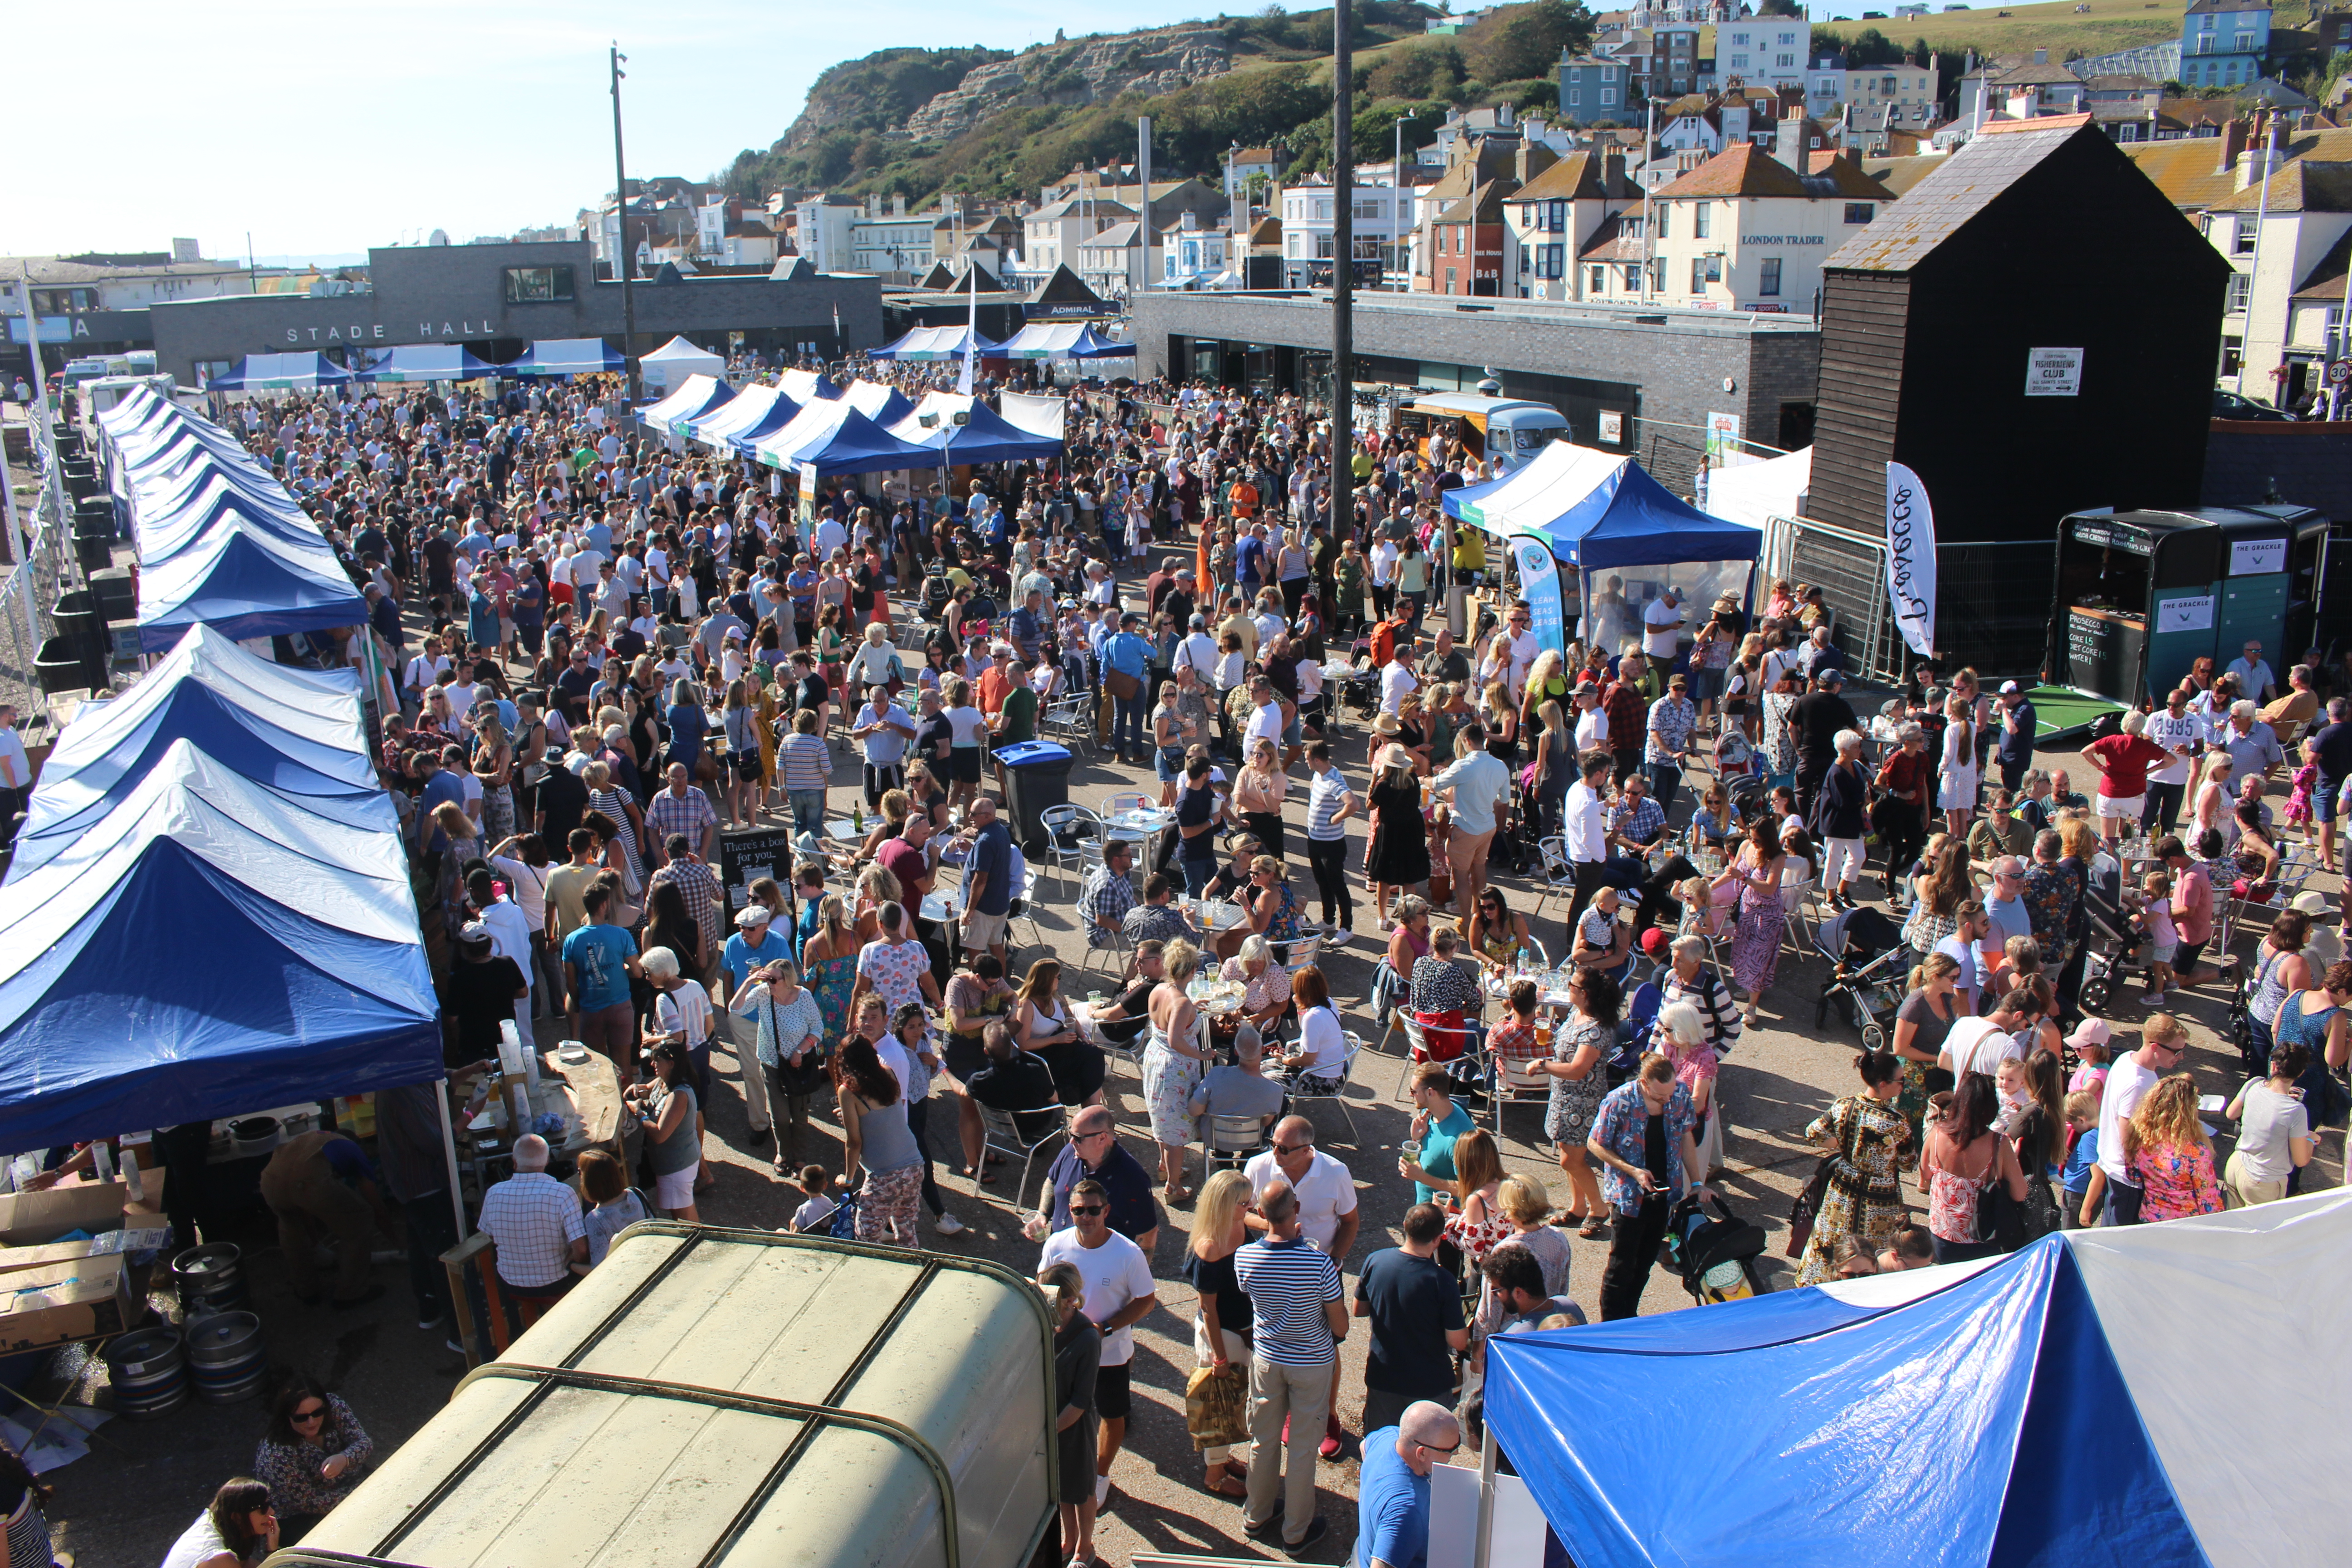 Bathed in sunshine seafood and wine festival hailed 'best yet'